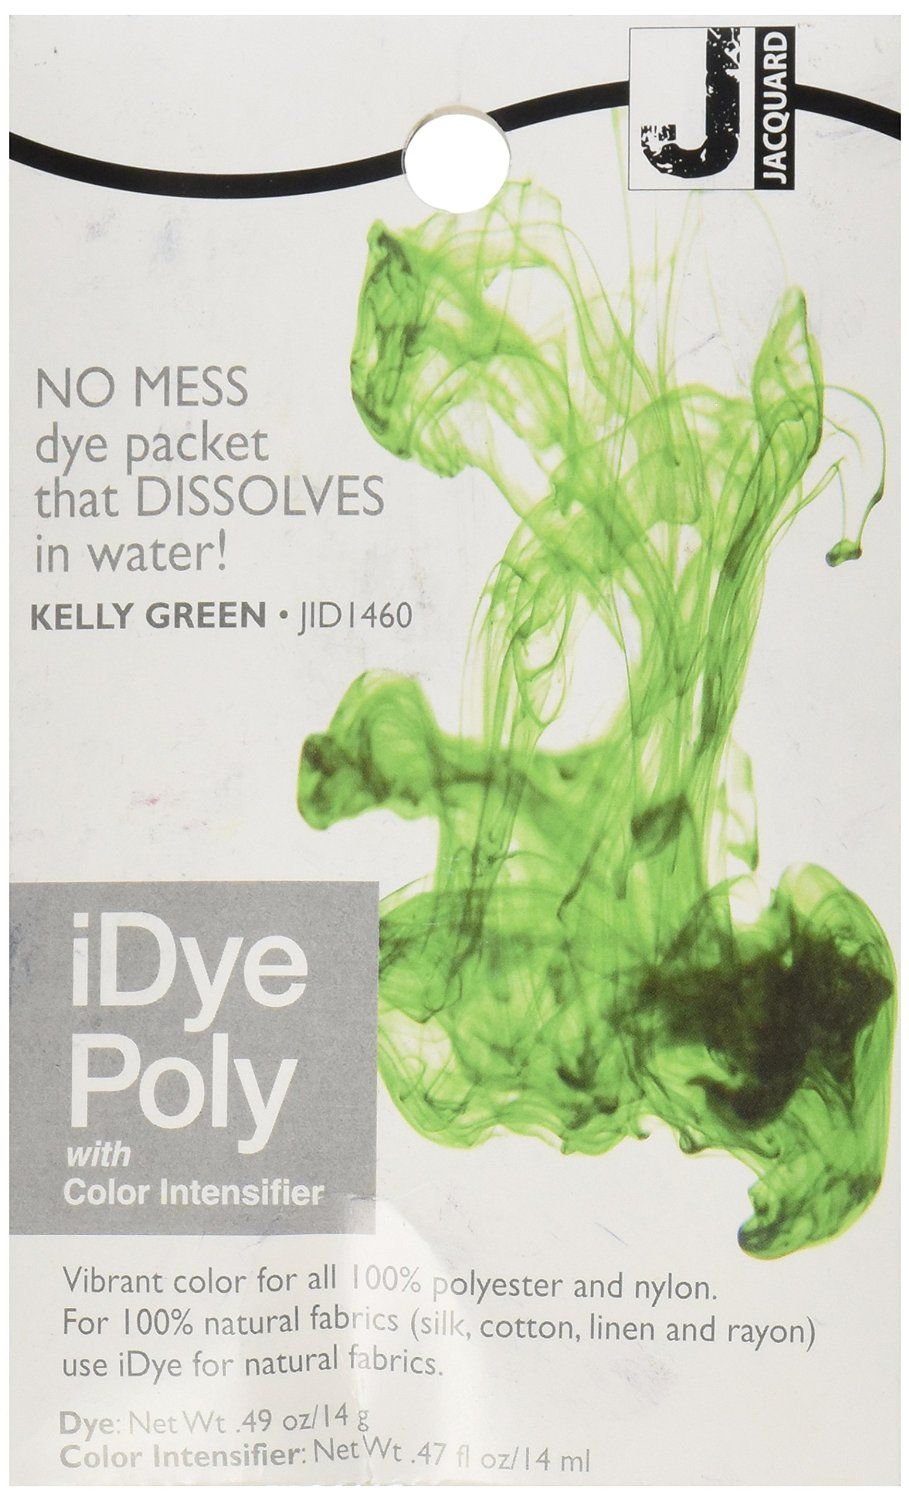 For Polyester Do You Know Anything About Rit Dyemore For